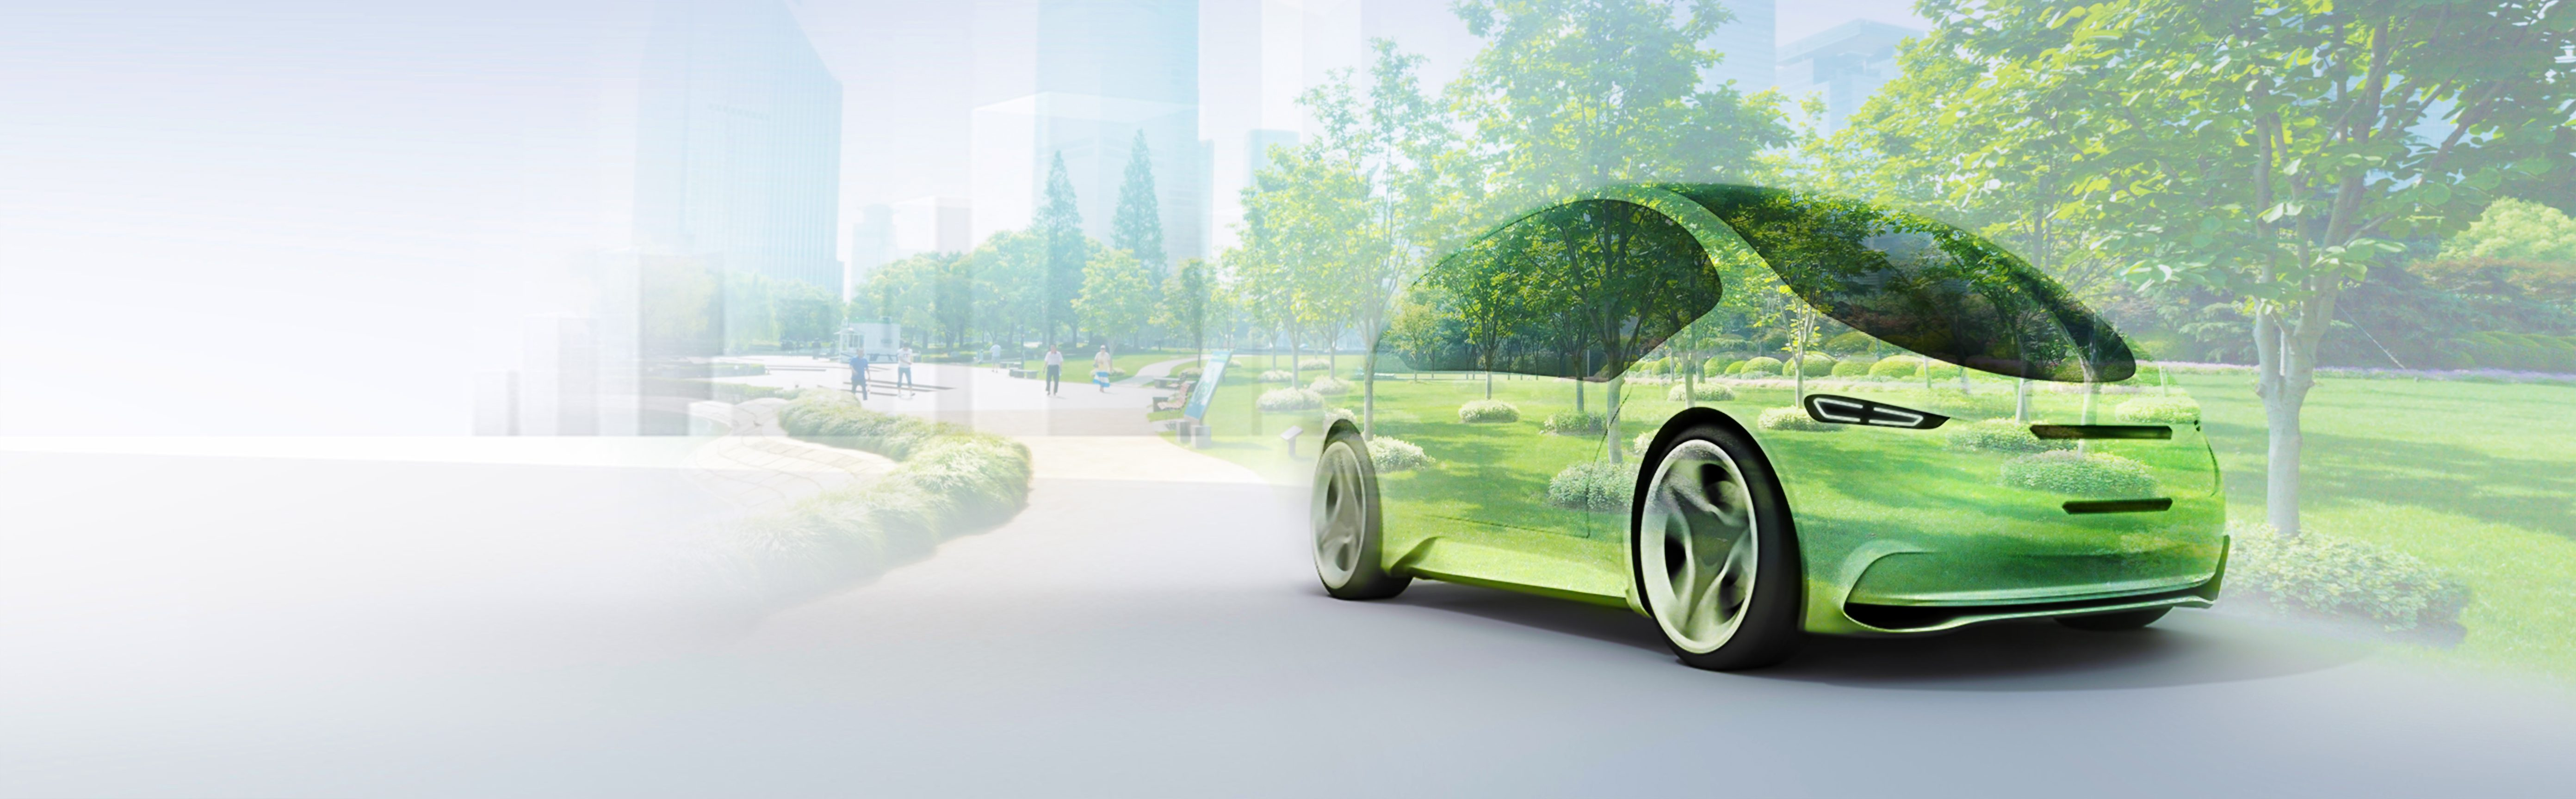 Bosch is approaching the mobility of the future with an open mind